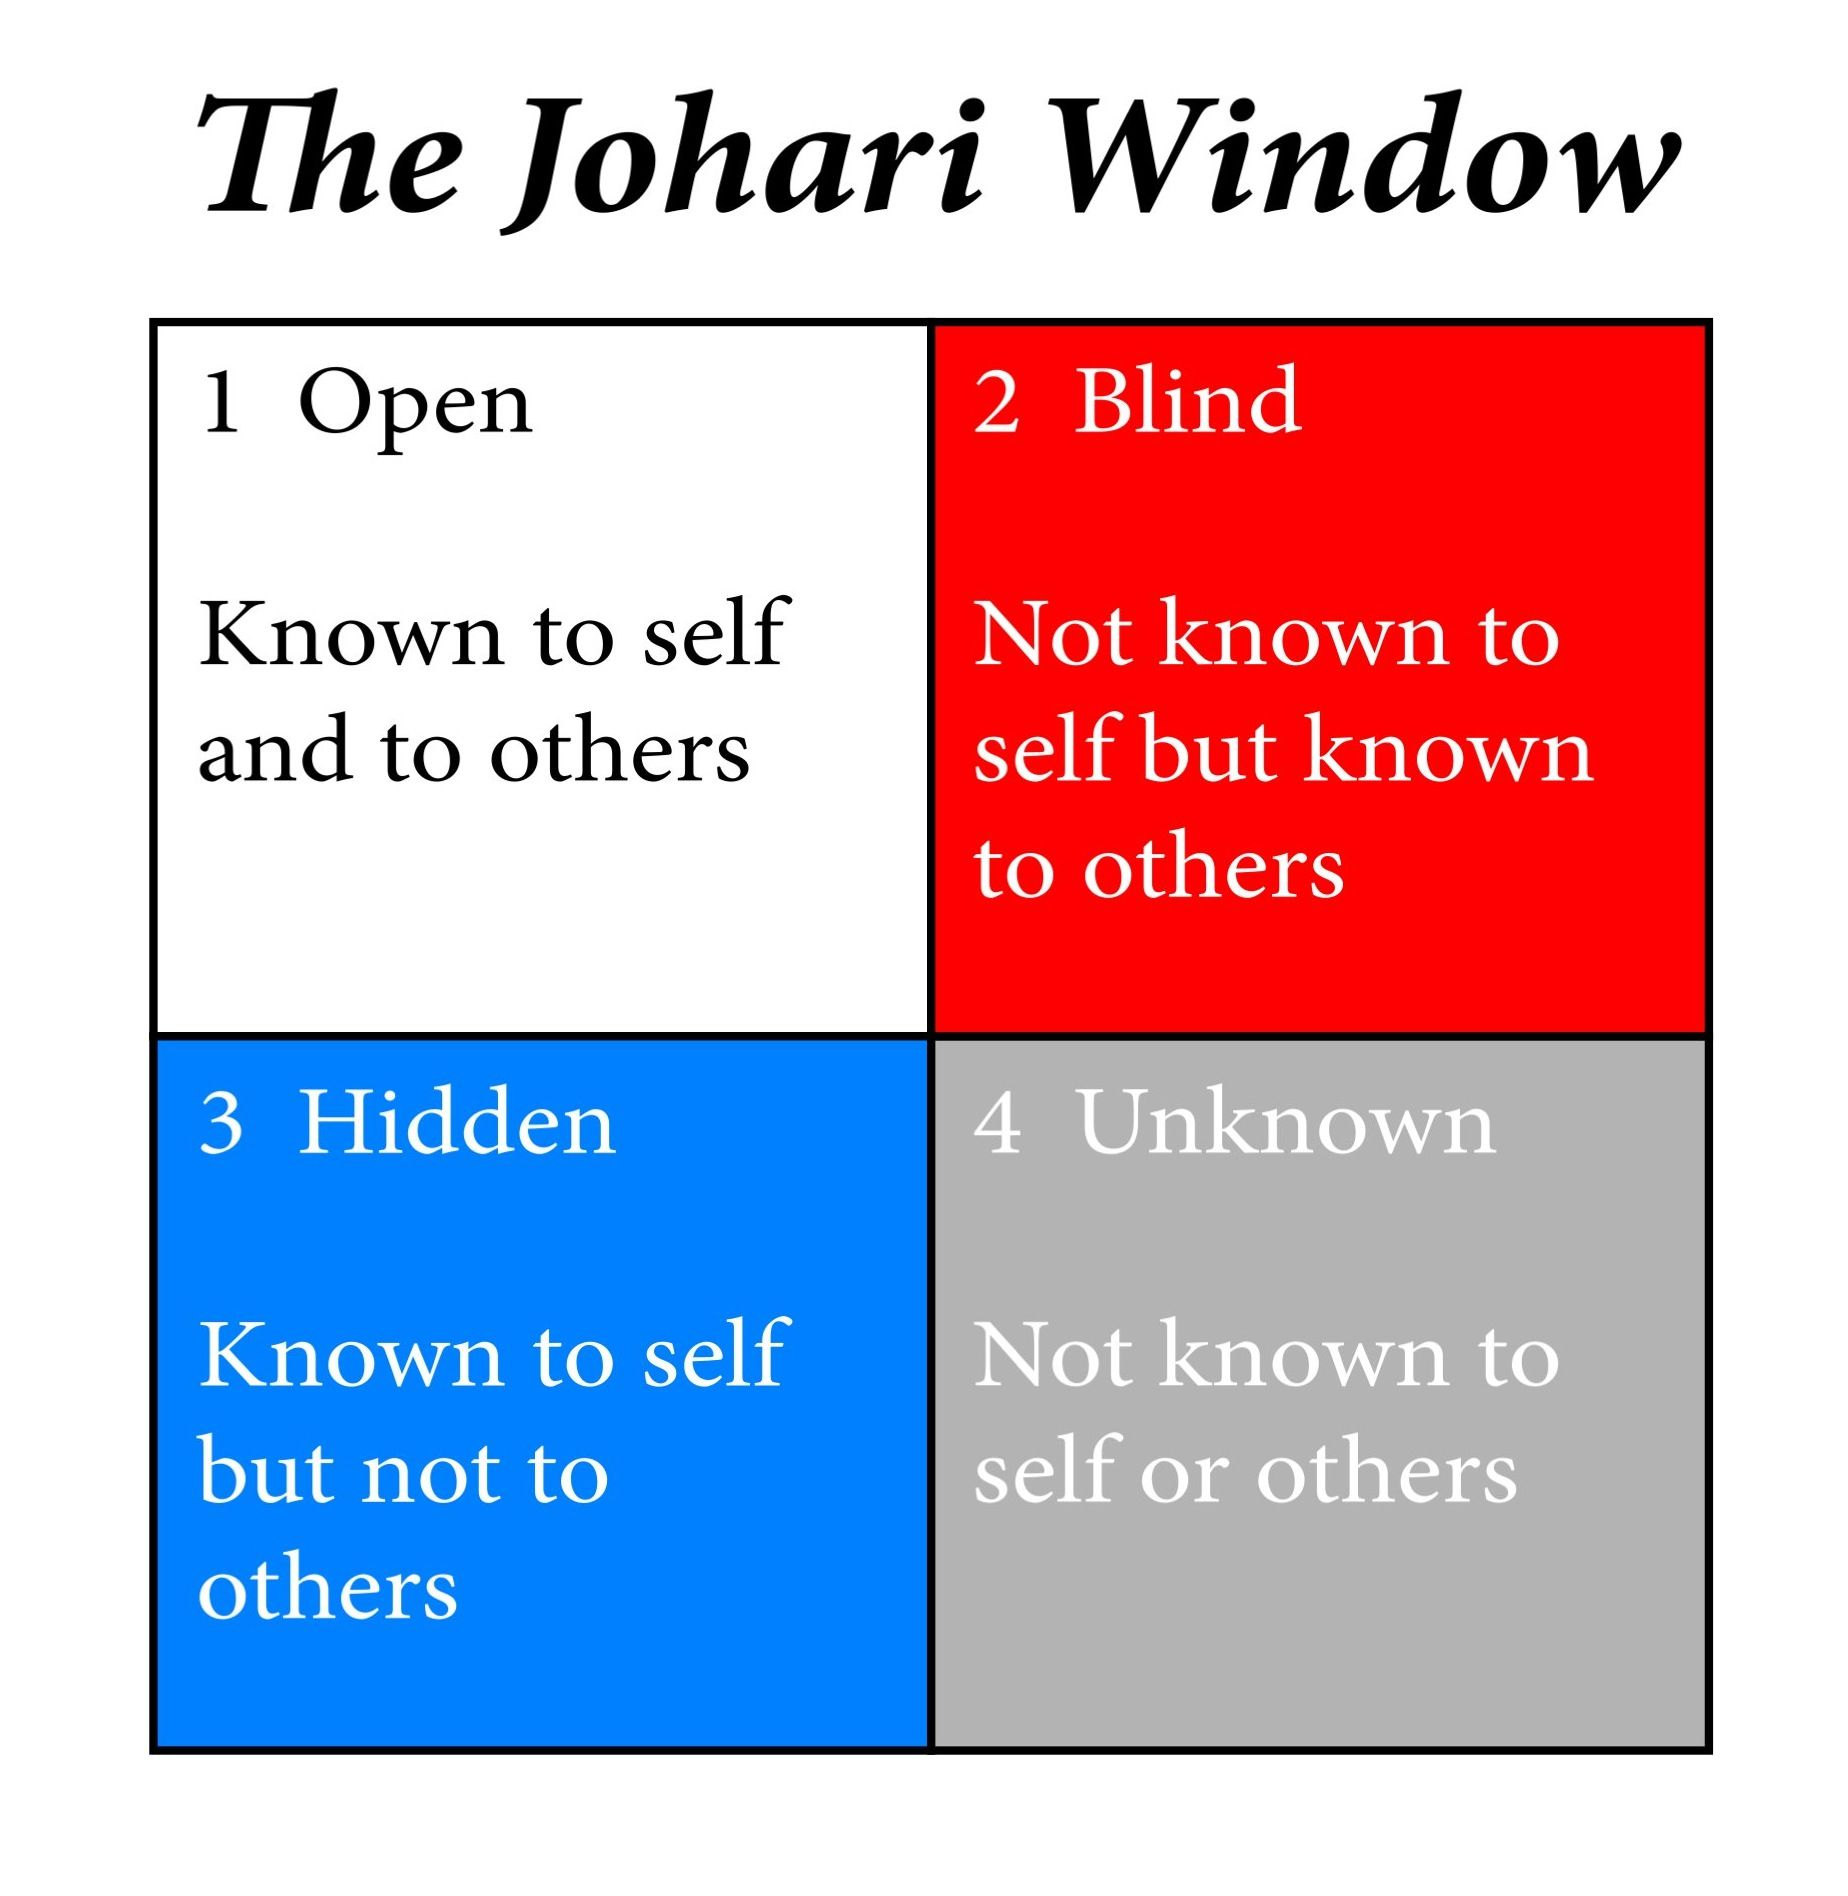 johari window visual od models feelings the o johari window is a psychological tool used to develop self awareness and promote better relationships among people